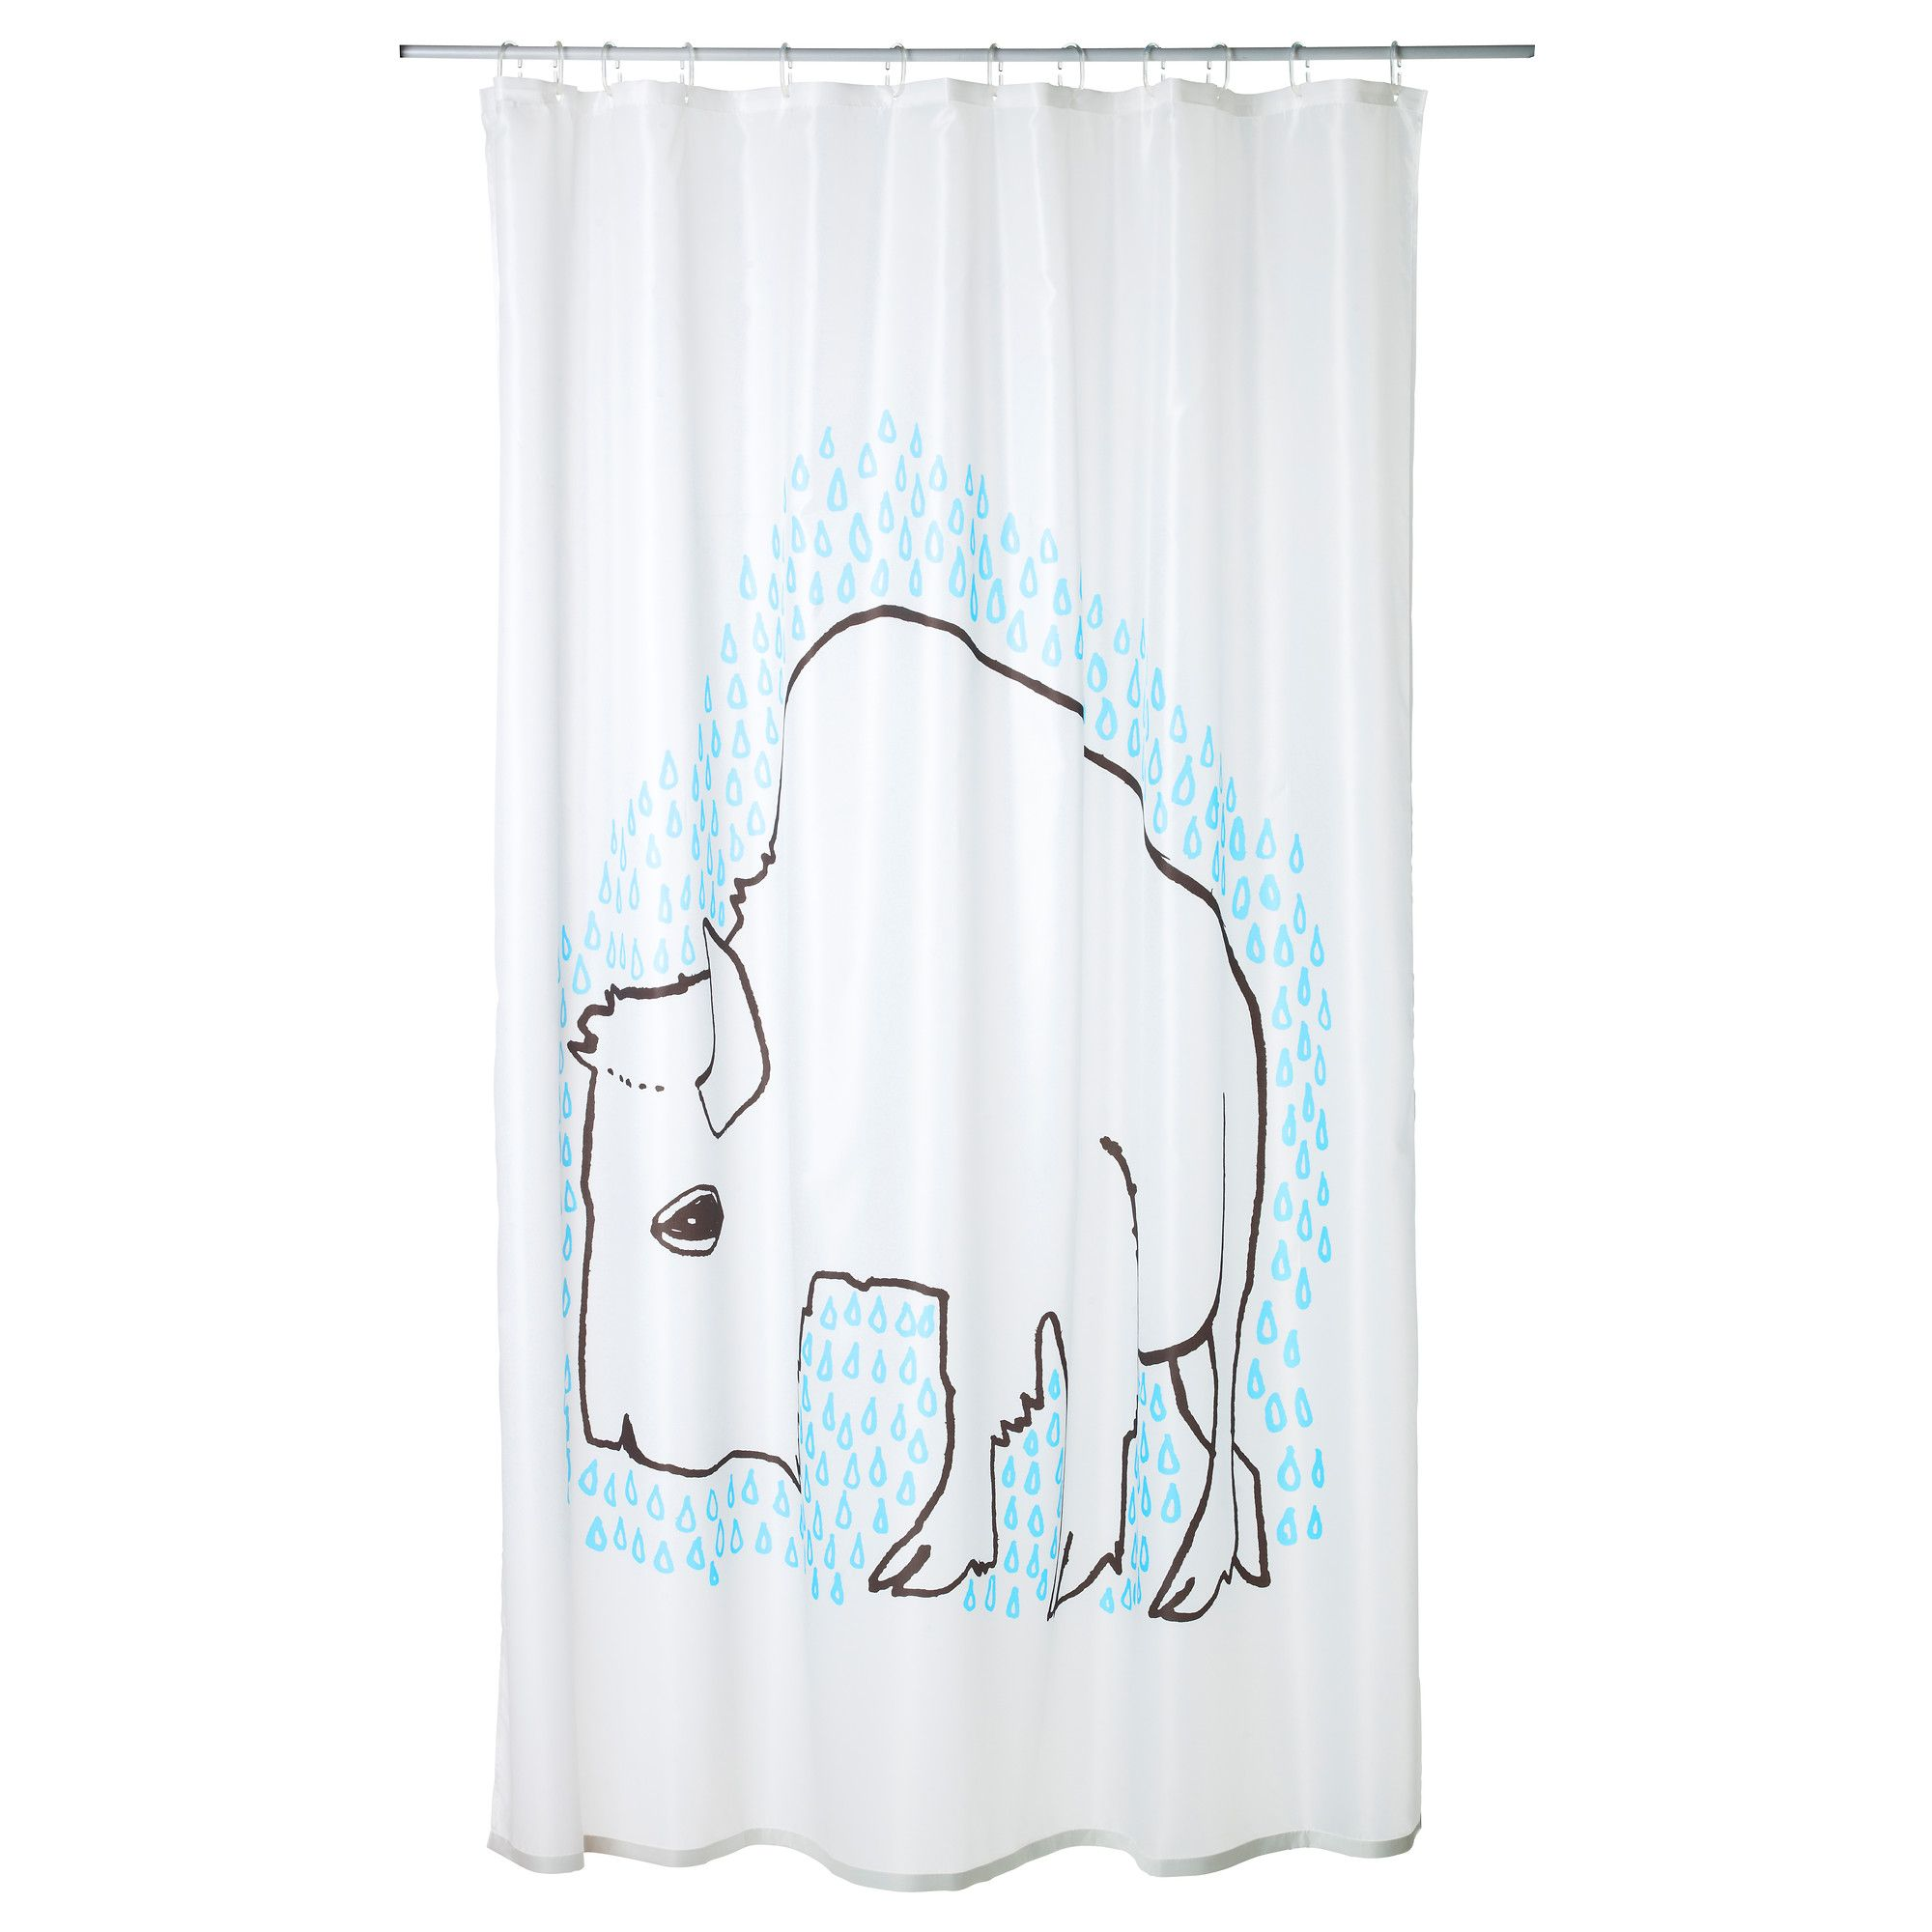 rideau turquoise ikea great ikea hugad curtain rod window the corners can be adjusted to fit. Black Bedroom Furniture Sets. Home Design Ideas